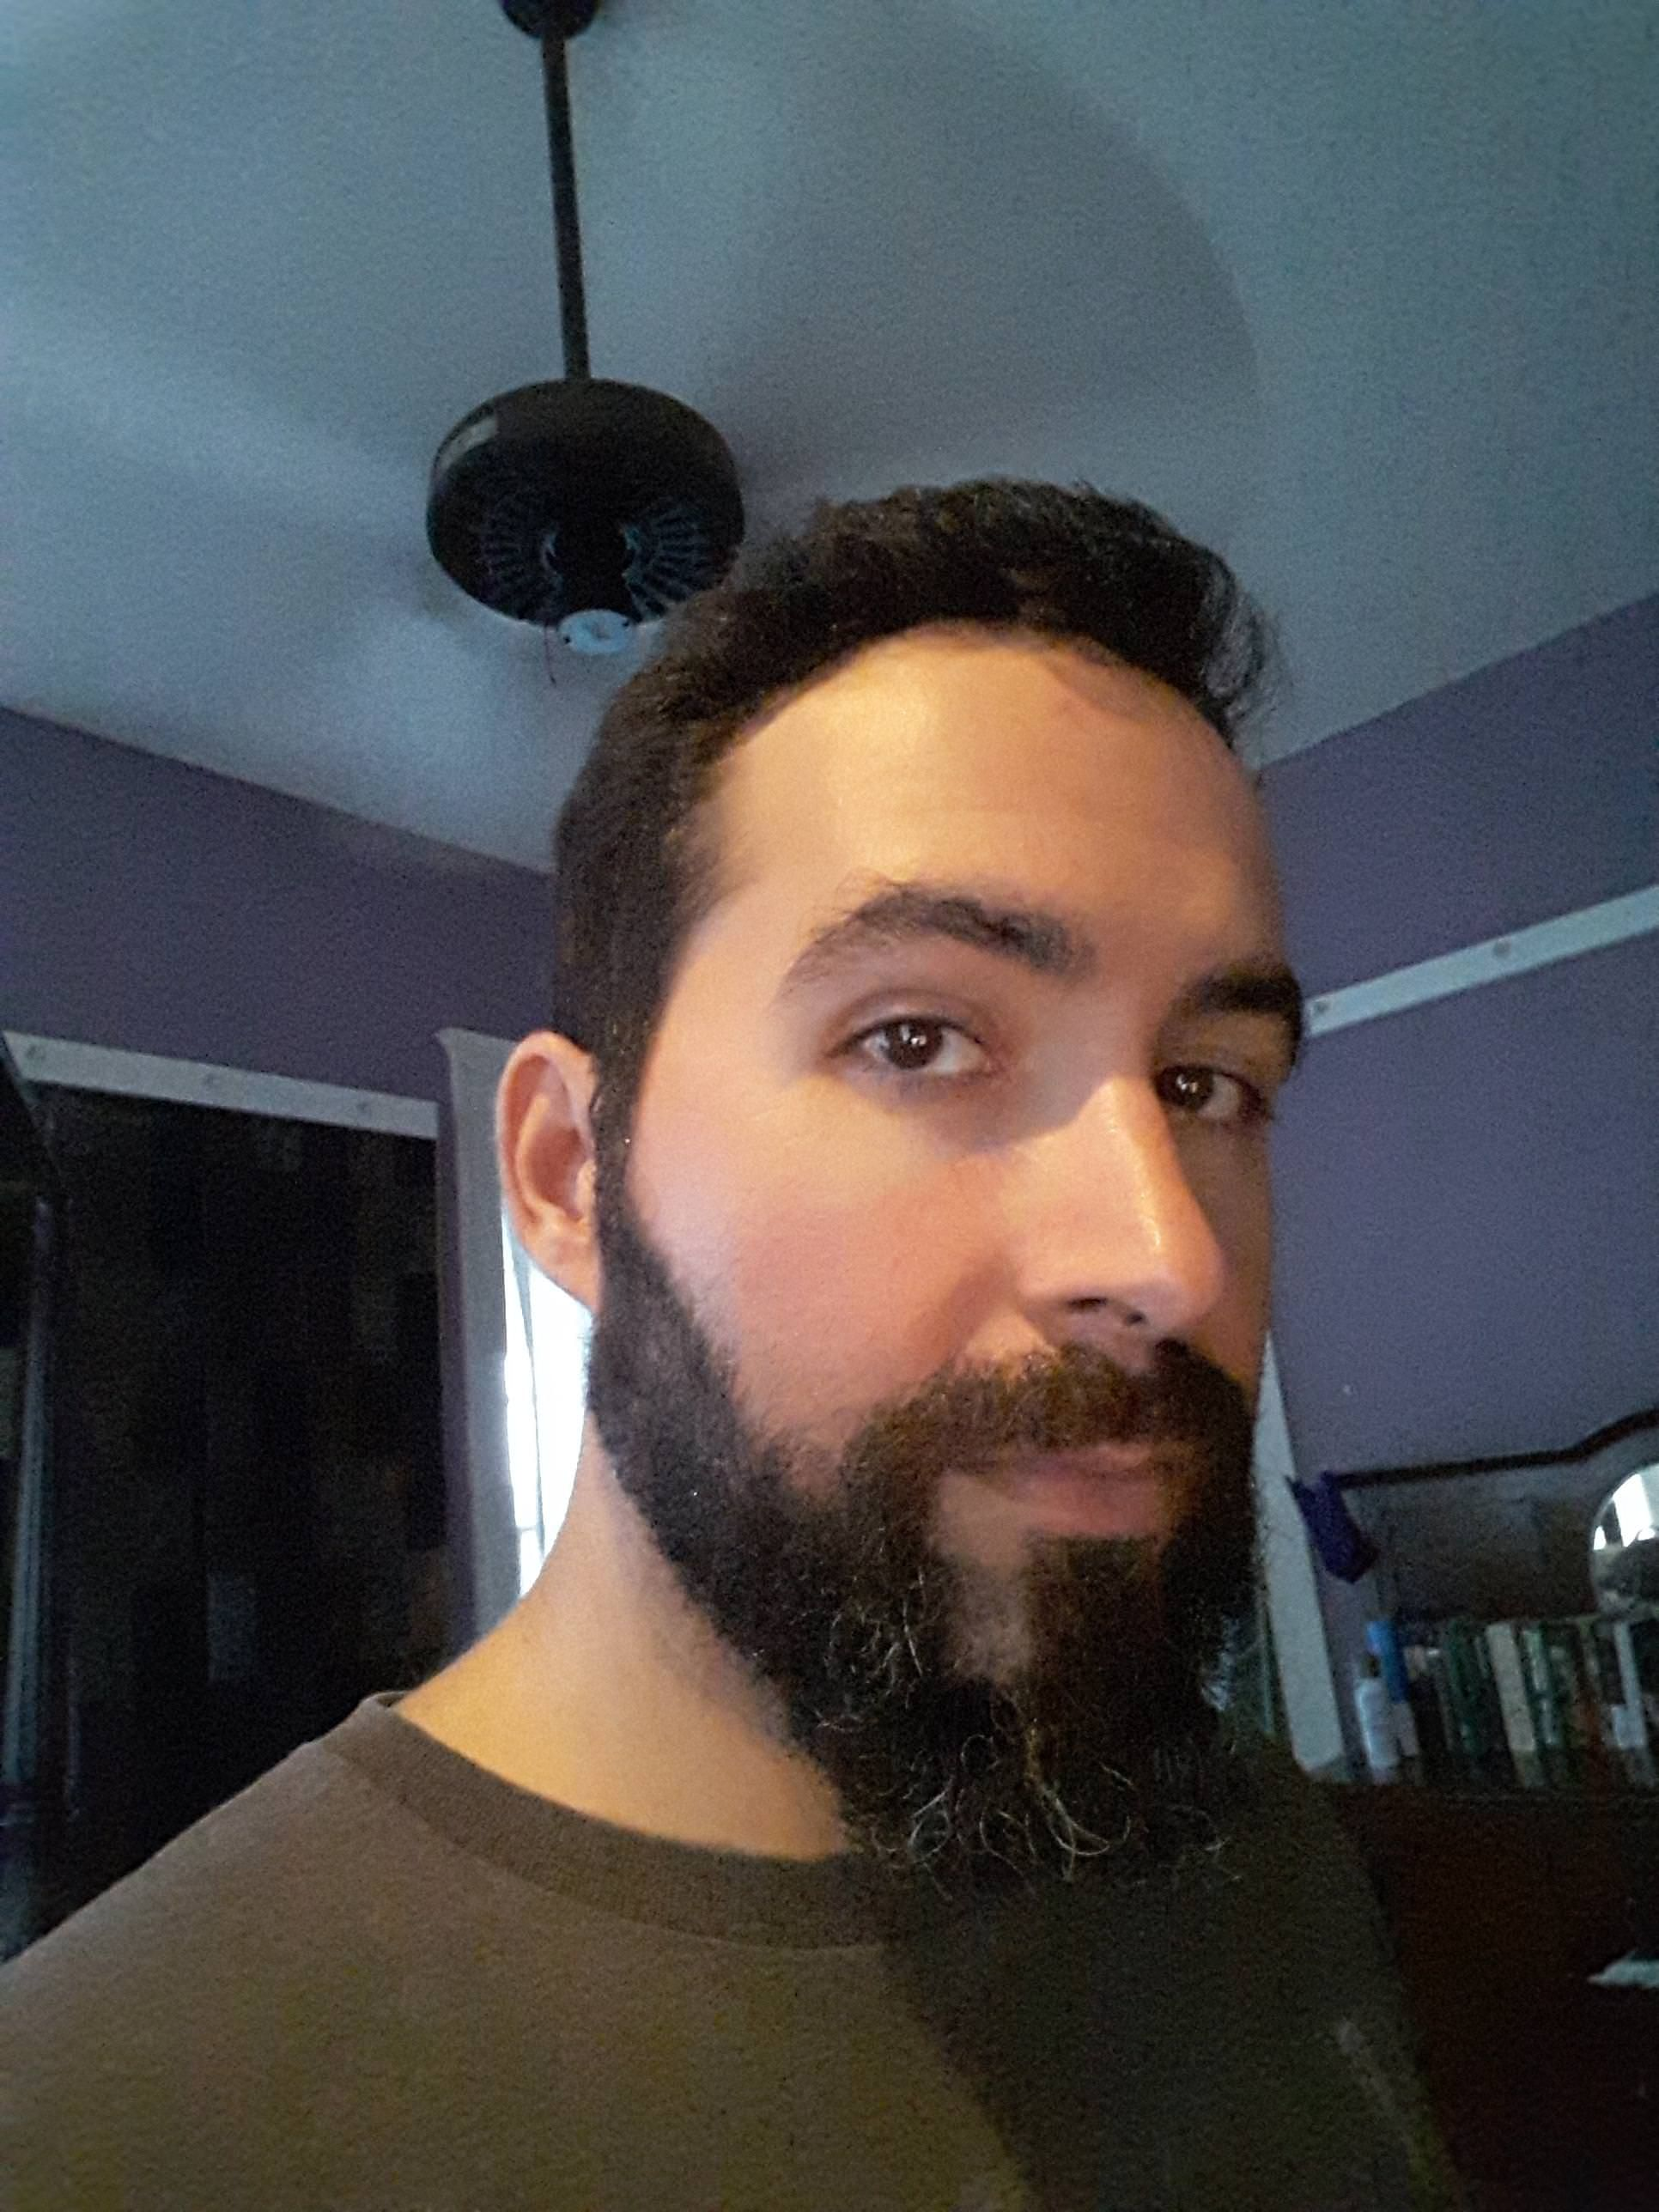 First Time Growing My Beard Out So Long And Want Some Feedback Thoughts Ions Concerns